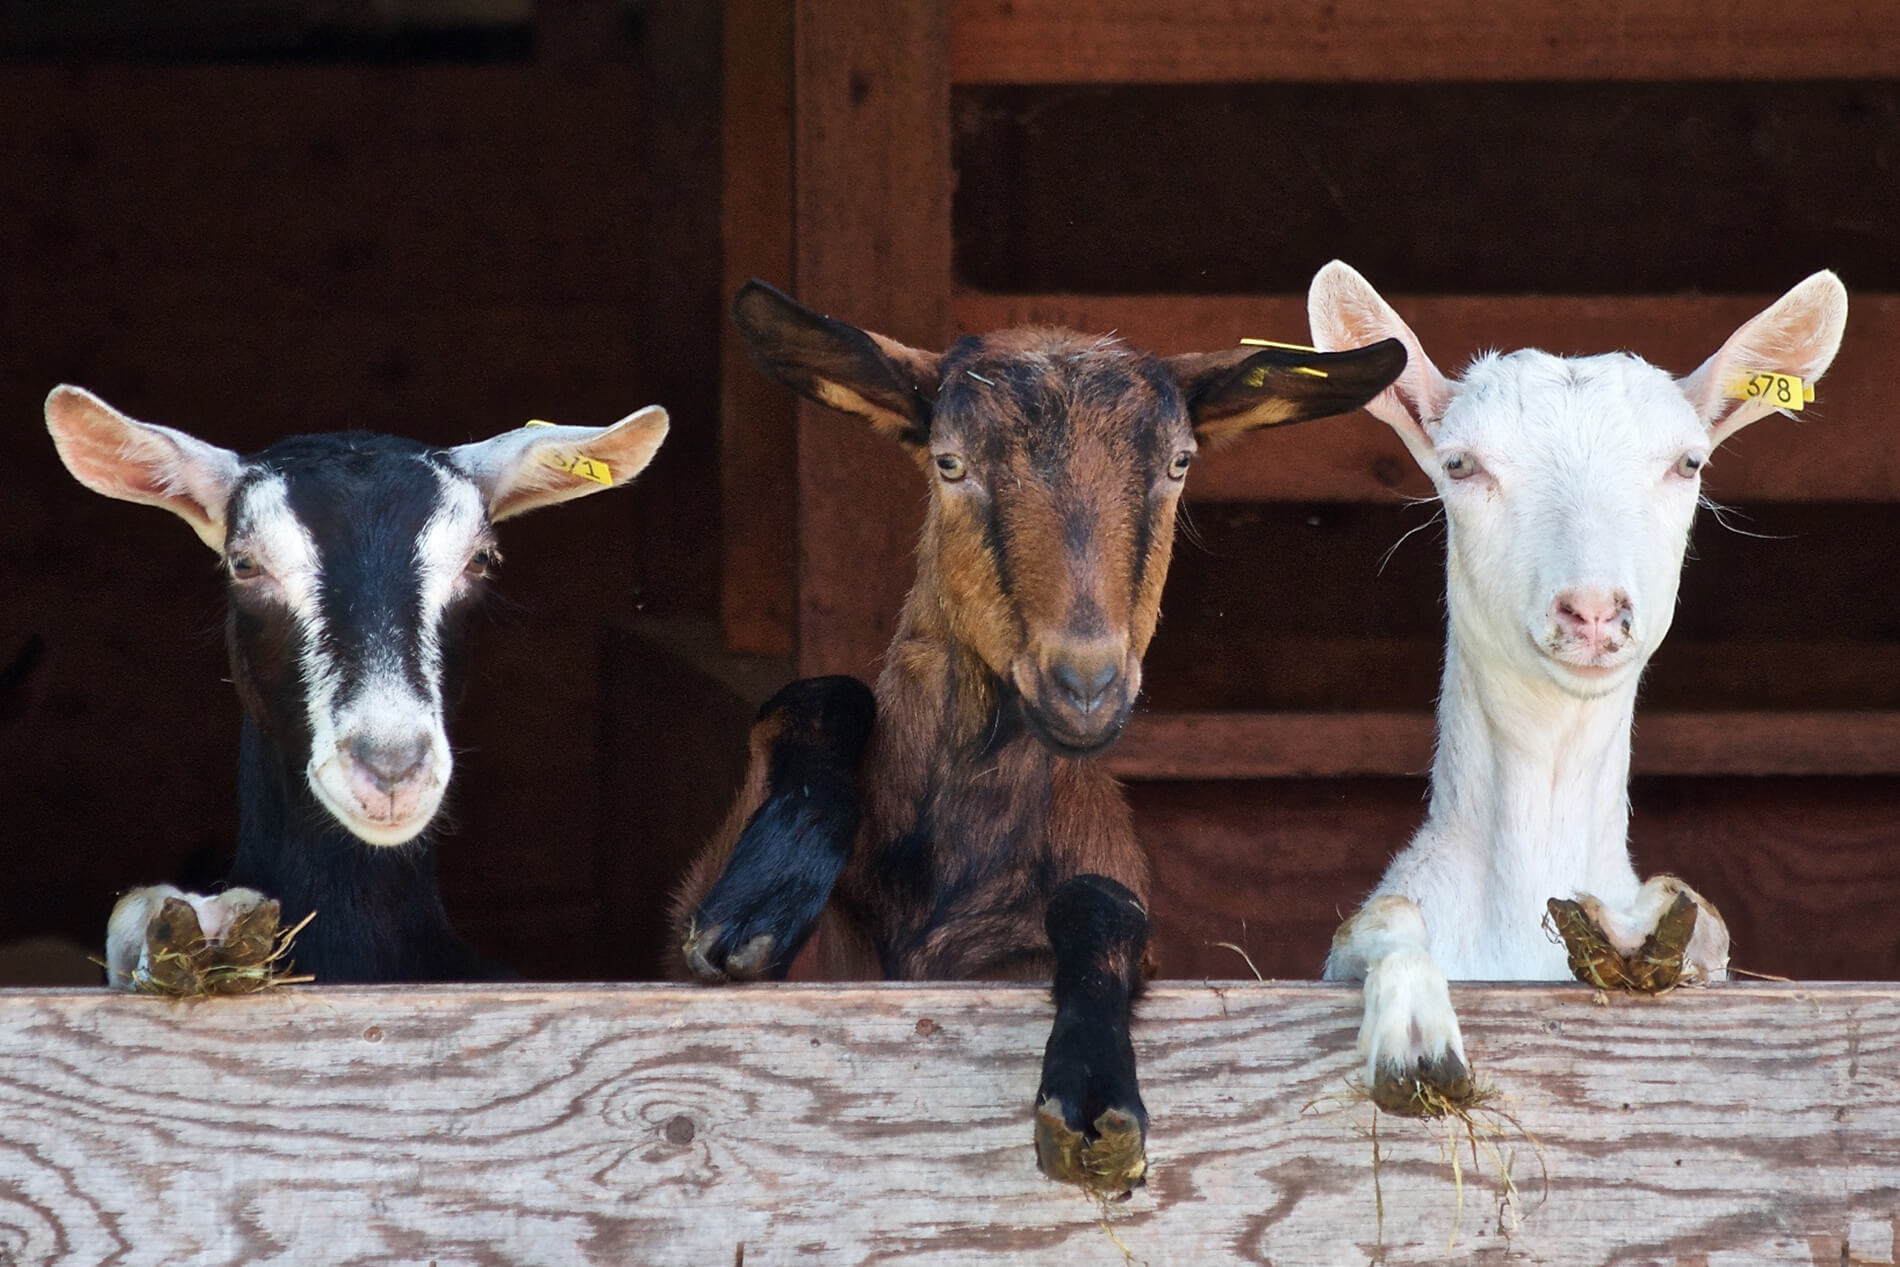 Utah goat farm provides halal meat for refugees